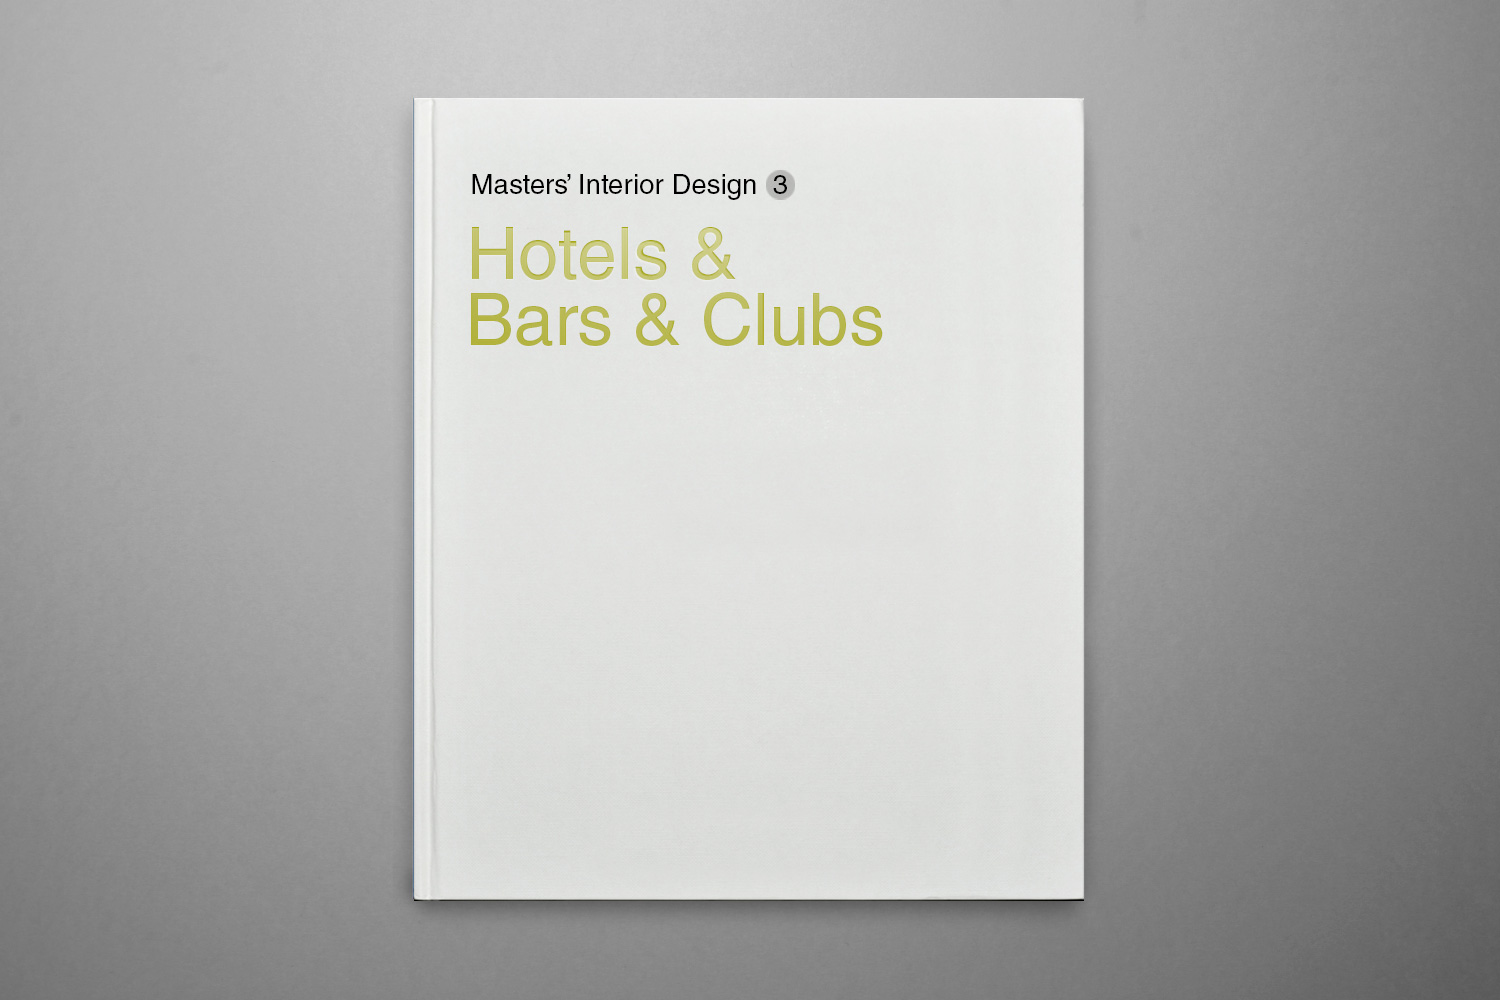 Masters' Interior Design - Hotels & Bars & Clubs - JtartGingko Press Inc.2013ISBN-13 : 978-7562338420